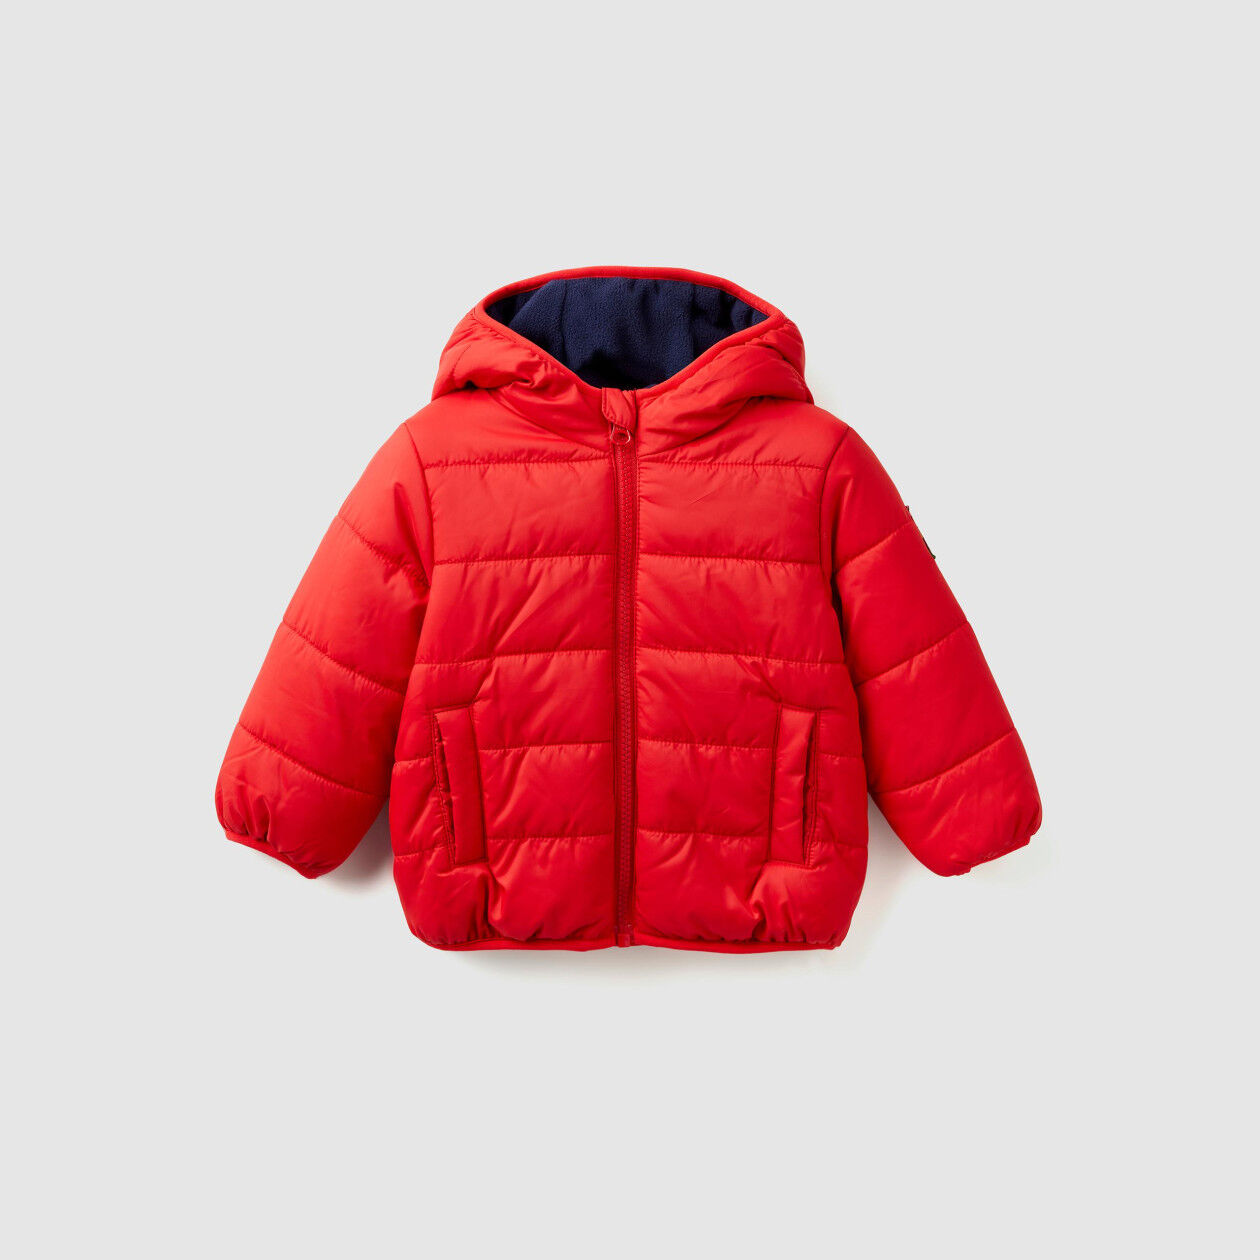 Puffer jacket lined in fleece